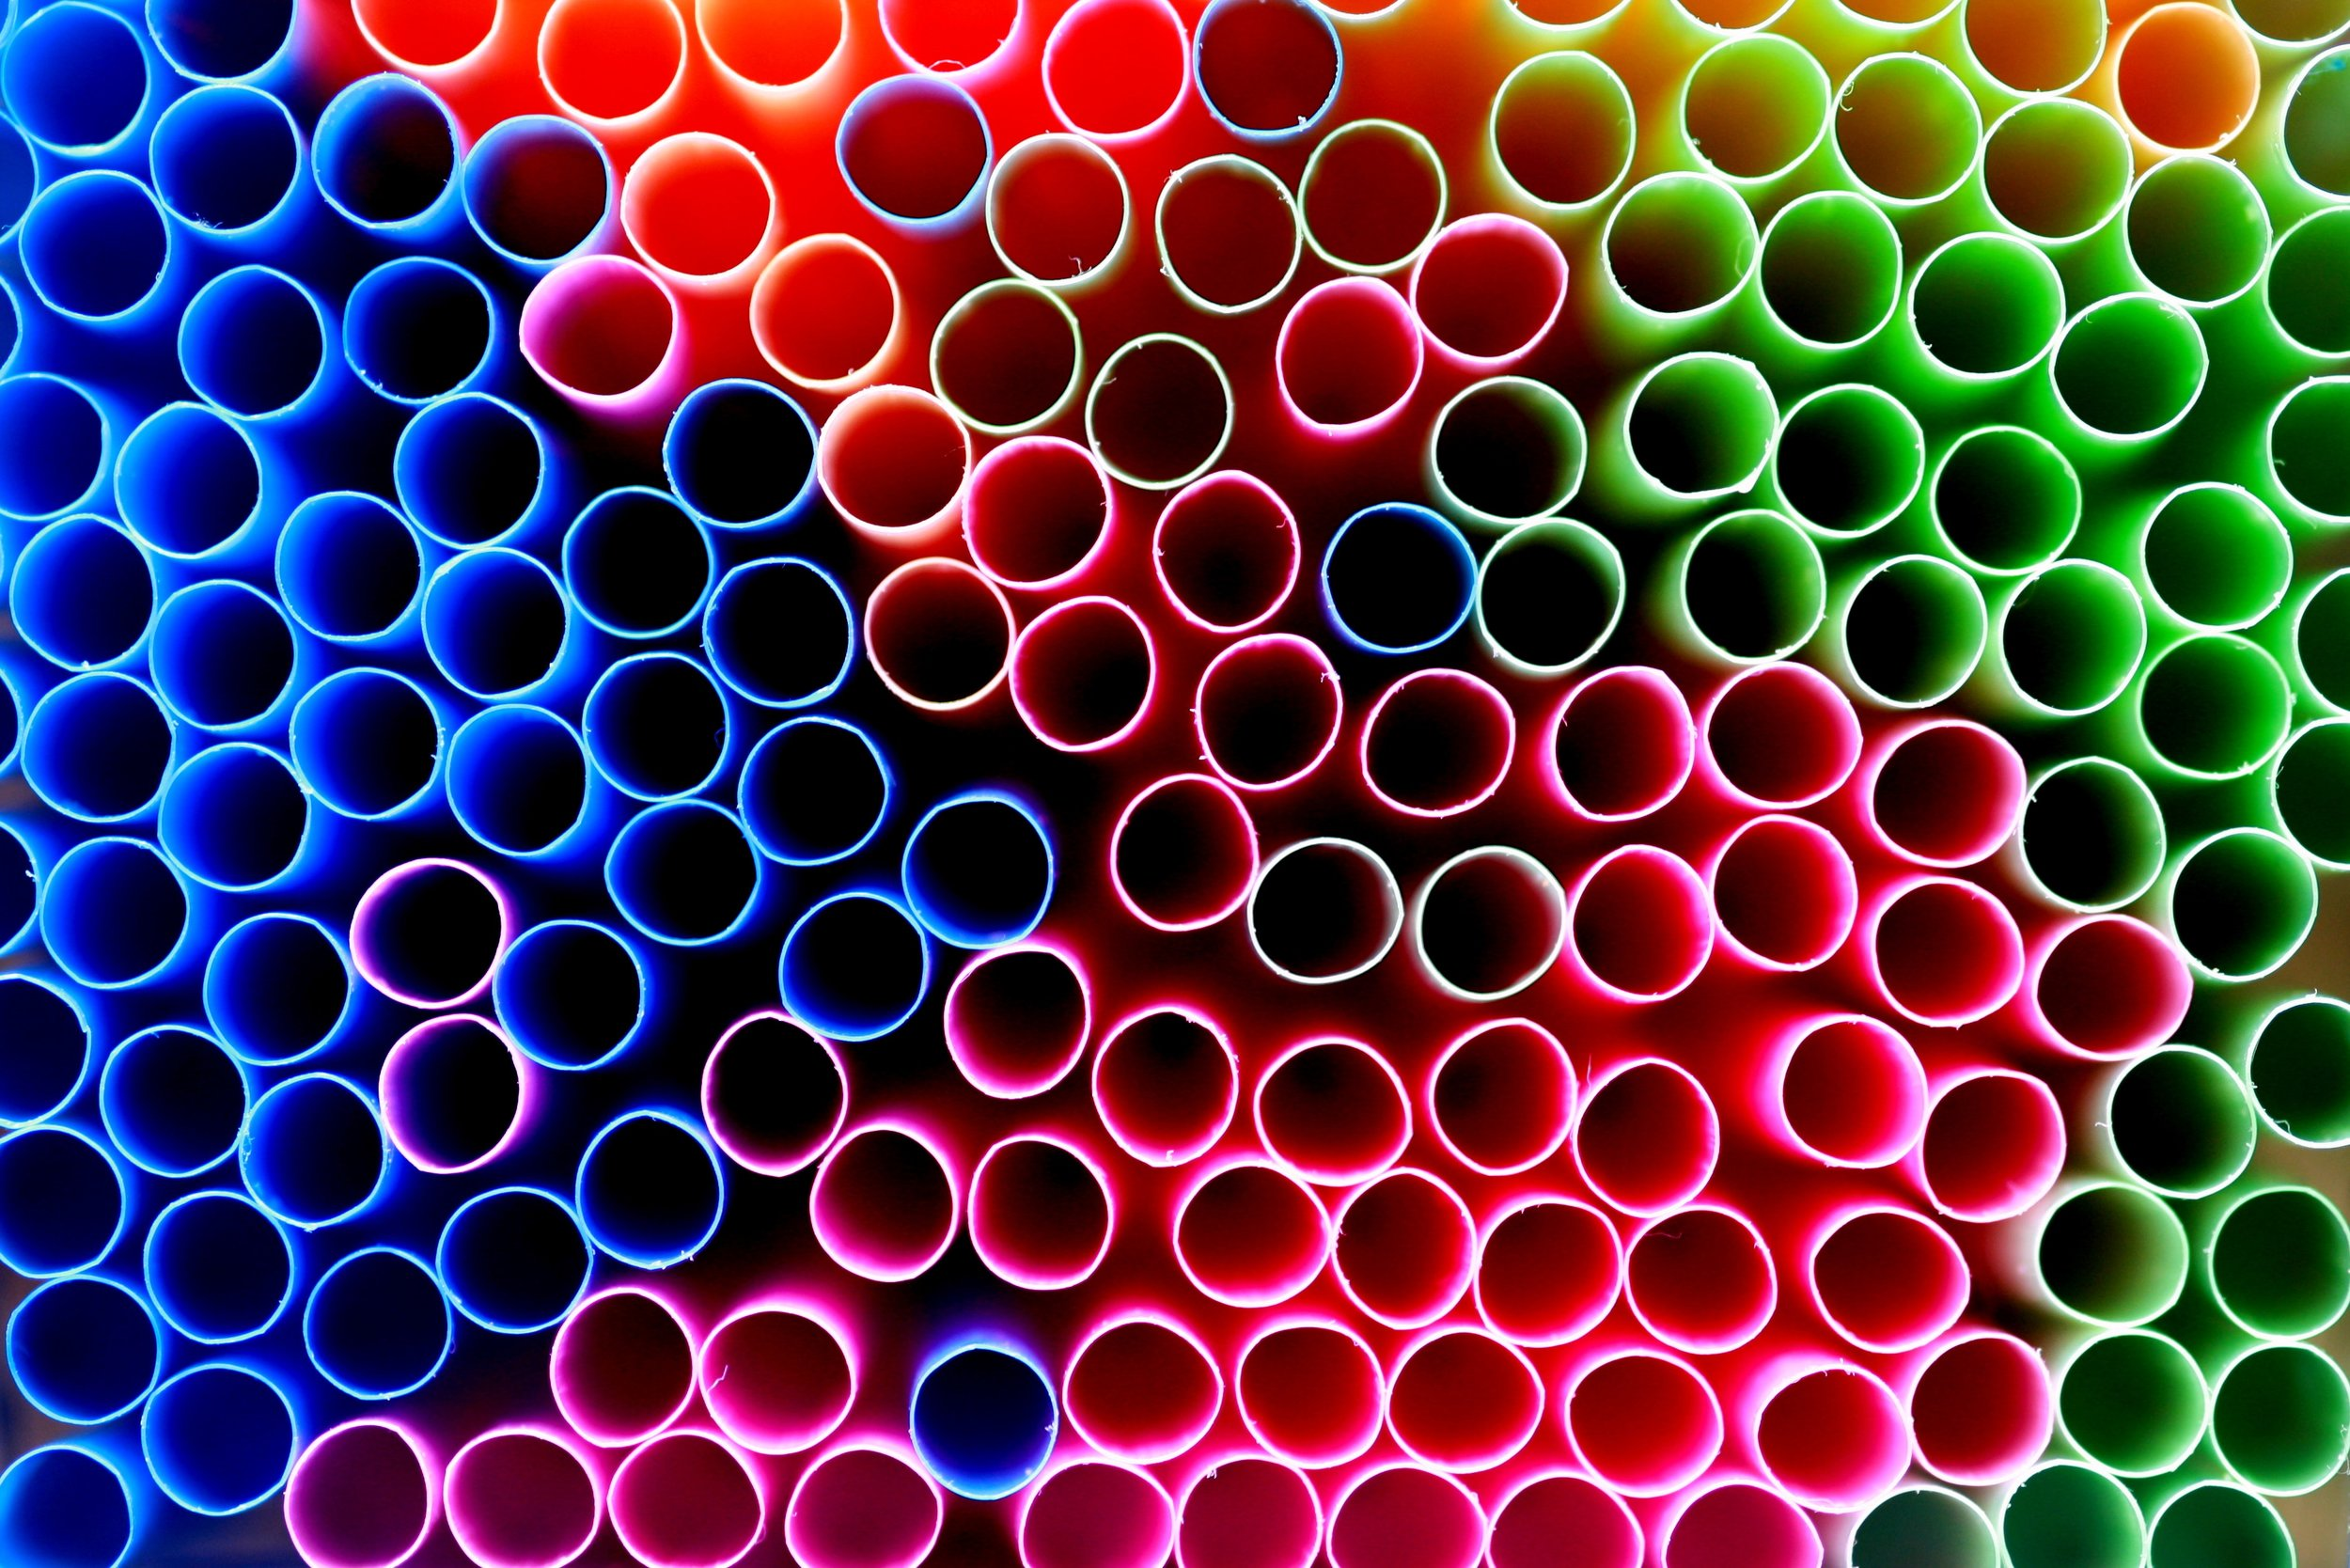 Entrepreneurs are betting on people quitting their plastic straw habit if there's a sustainable and easy-to-find alternative. Turns out there are plenty of them.